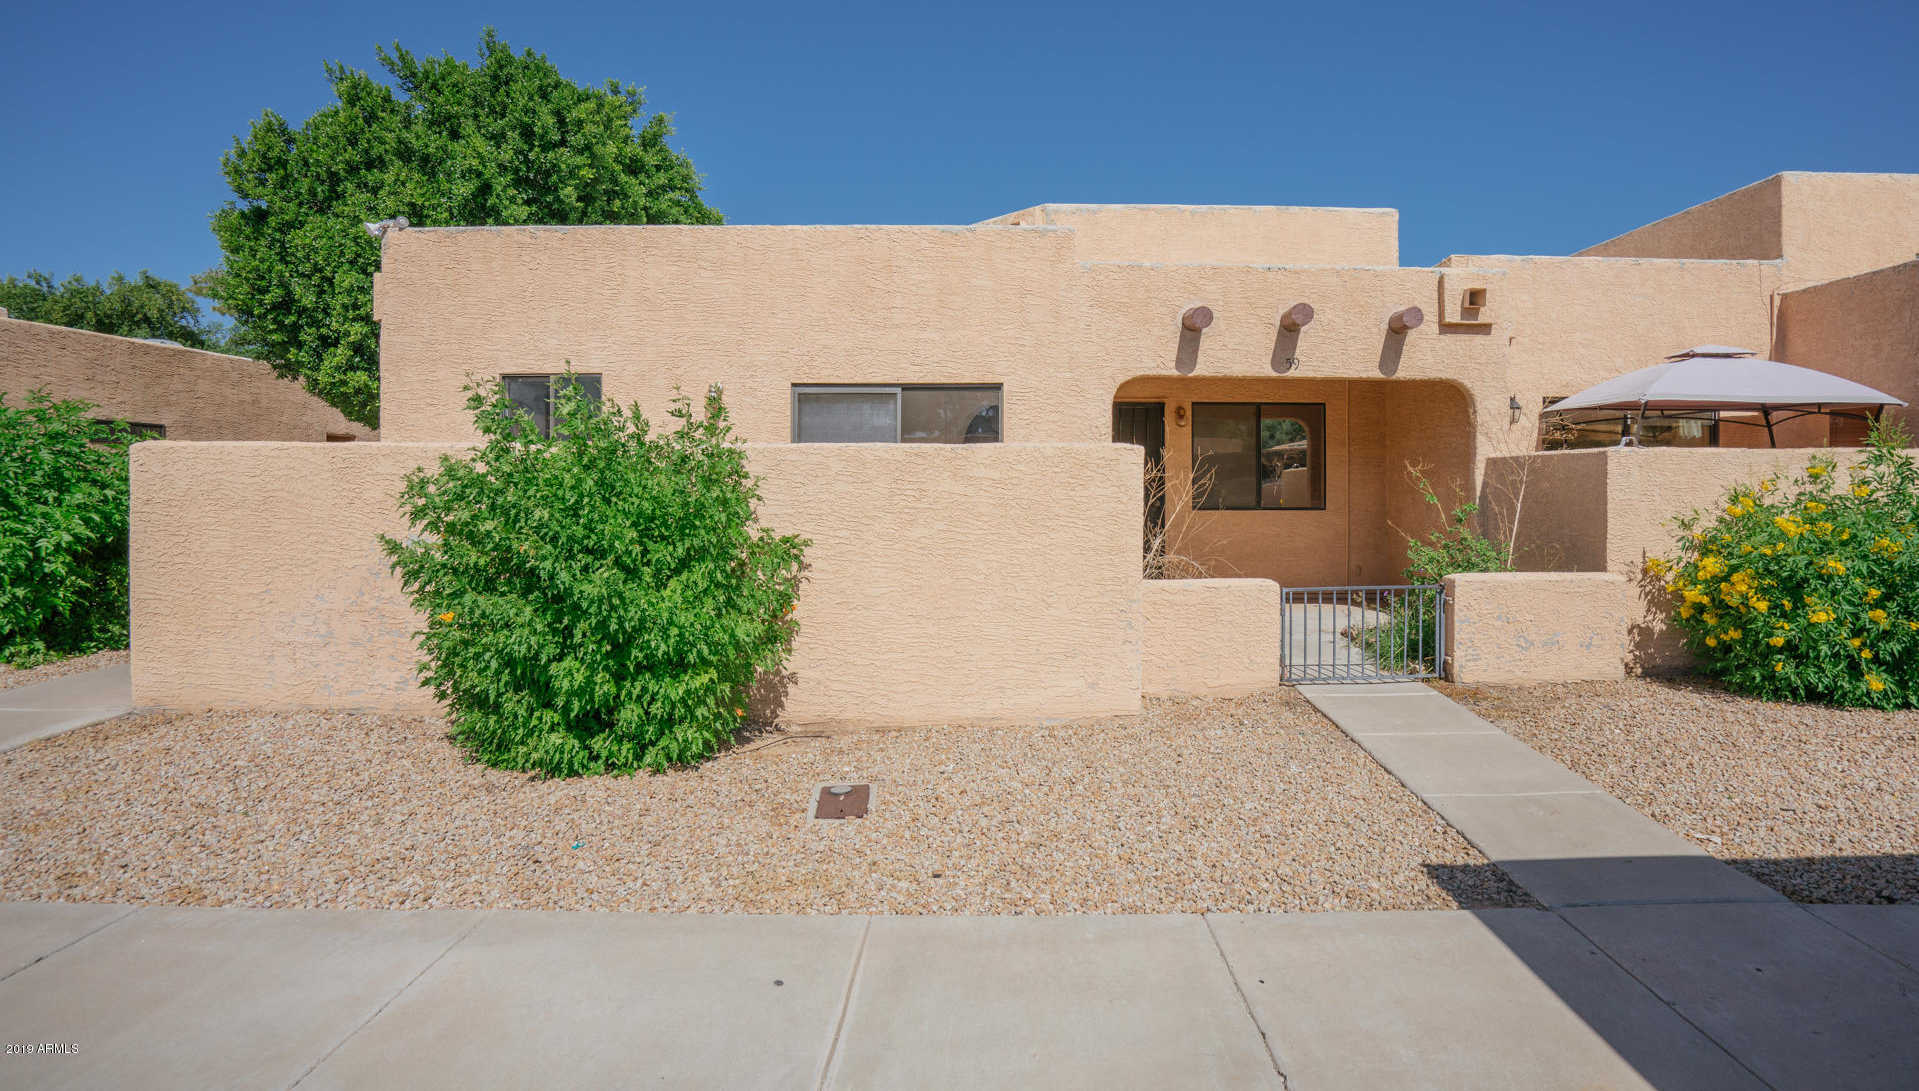 $167,000 - 2Br/2Ba -  for Sale in Westgreen Townhouses Phase 1 Amd Lt 1-132 Tr A-q, Peoria